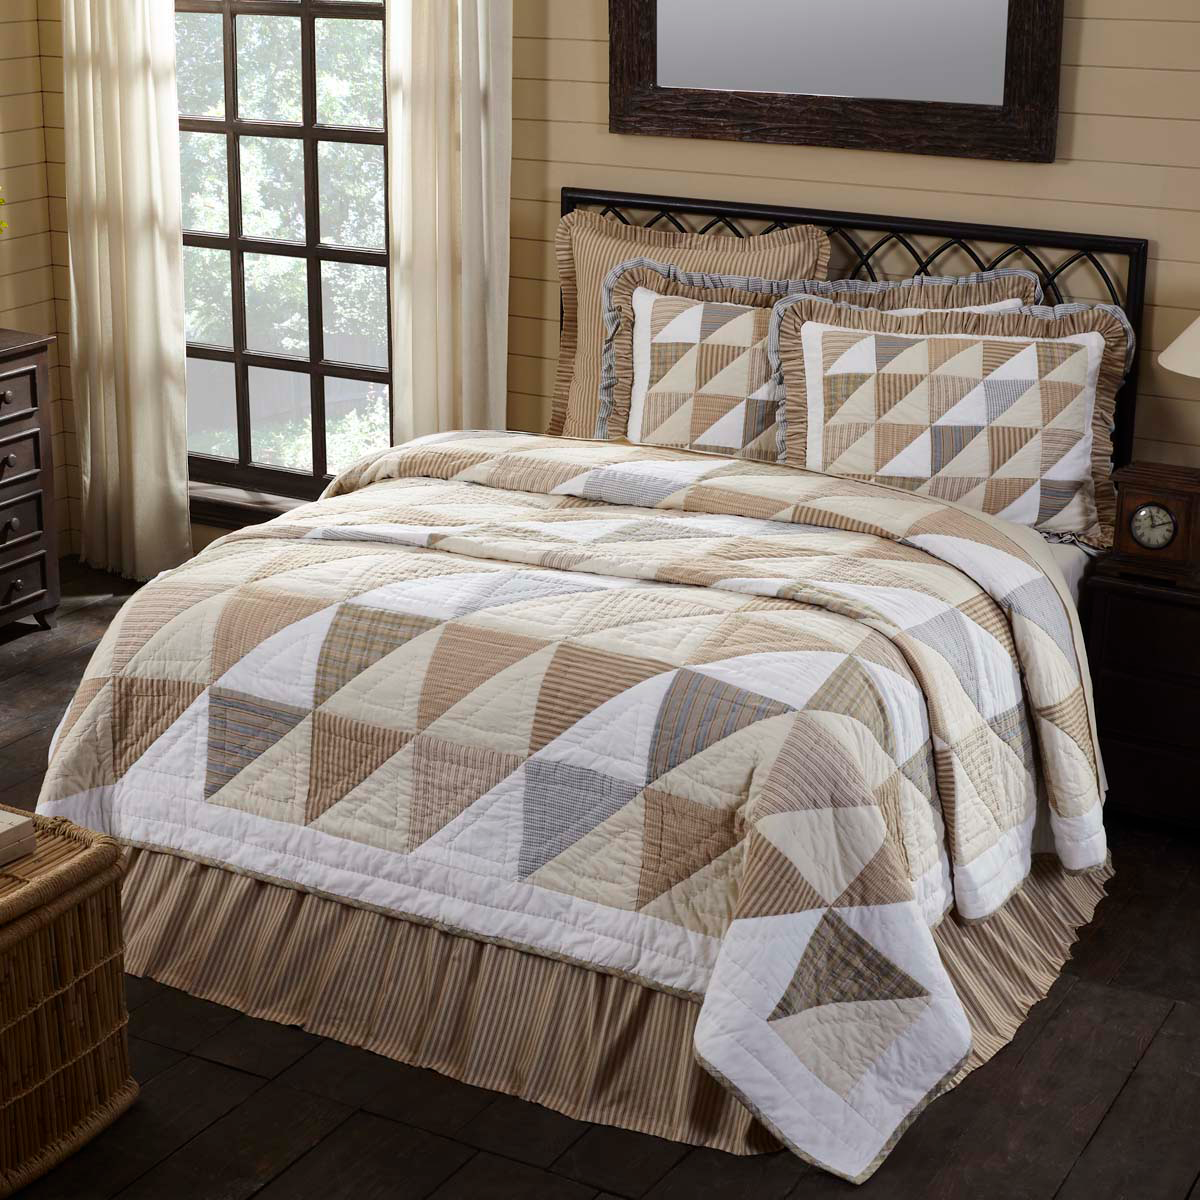 4-pc Joanna Twin Quilt Set - Quilted Sham, Button Pillow, Bed Skirt - Vhc Brands